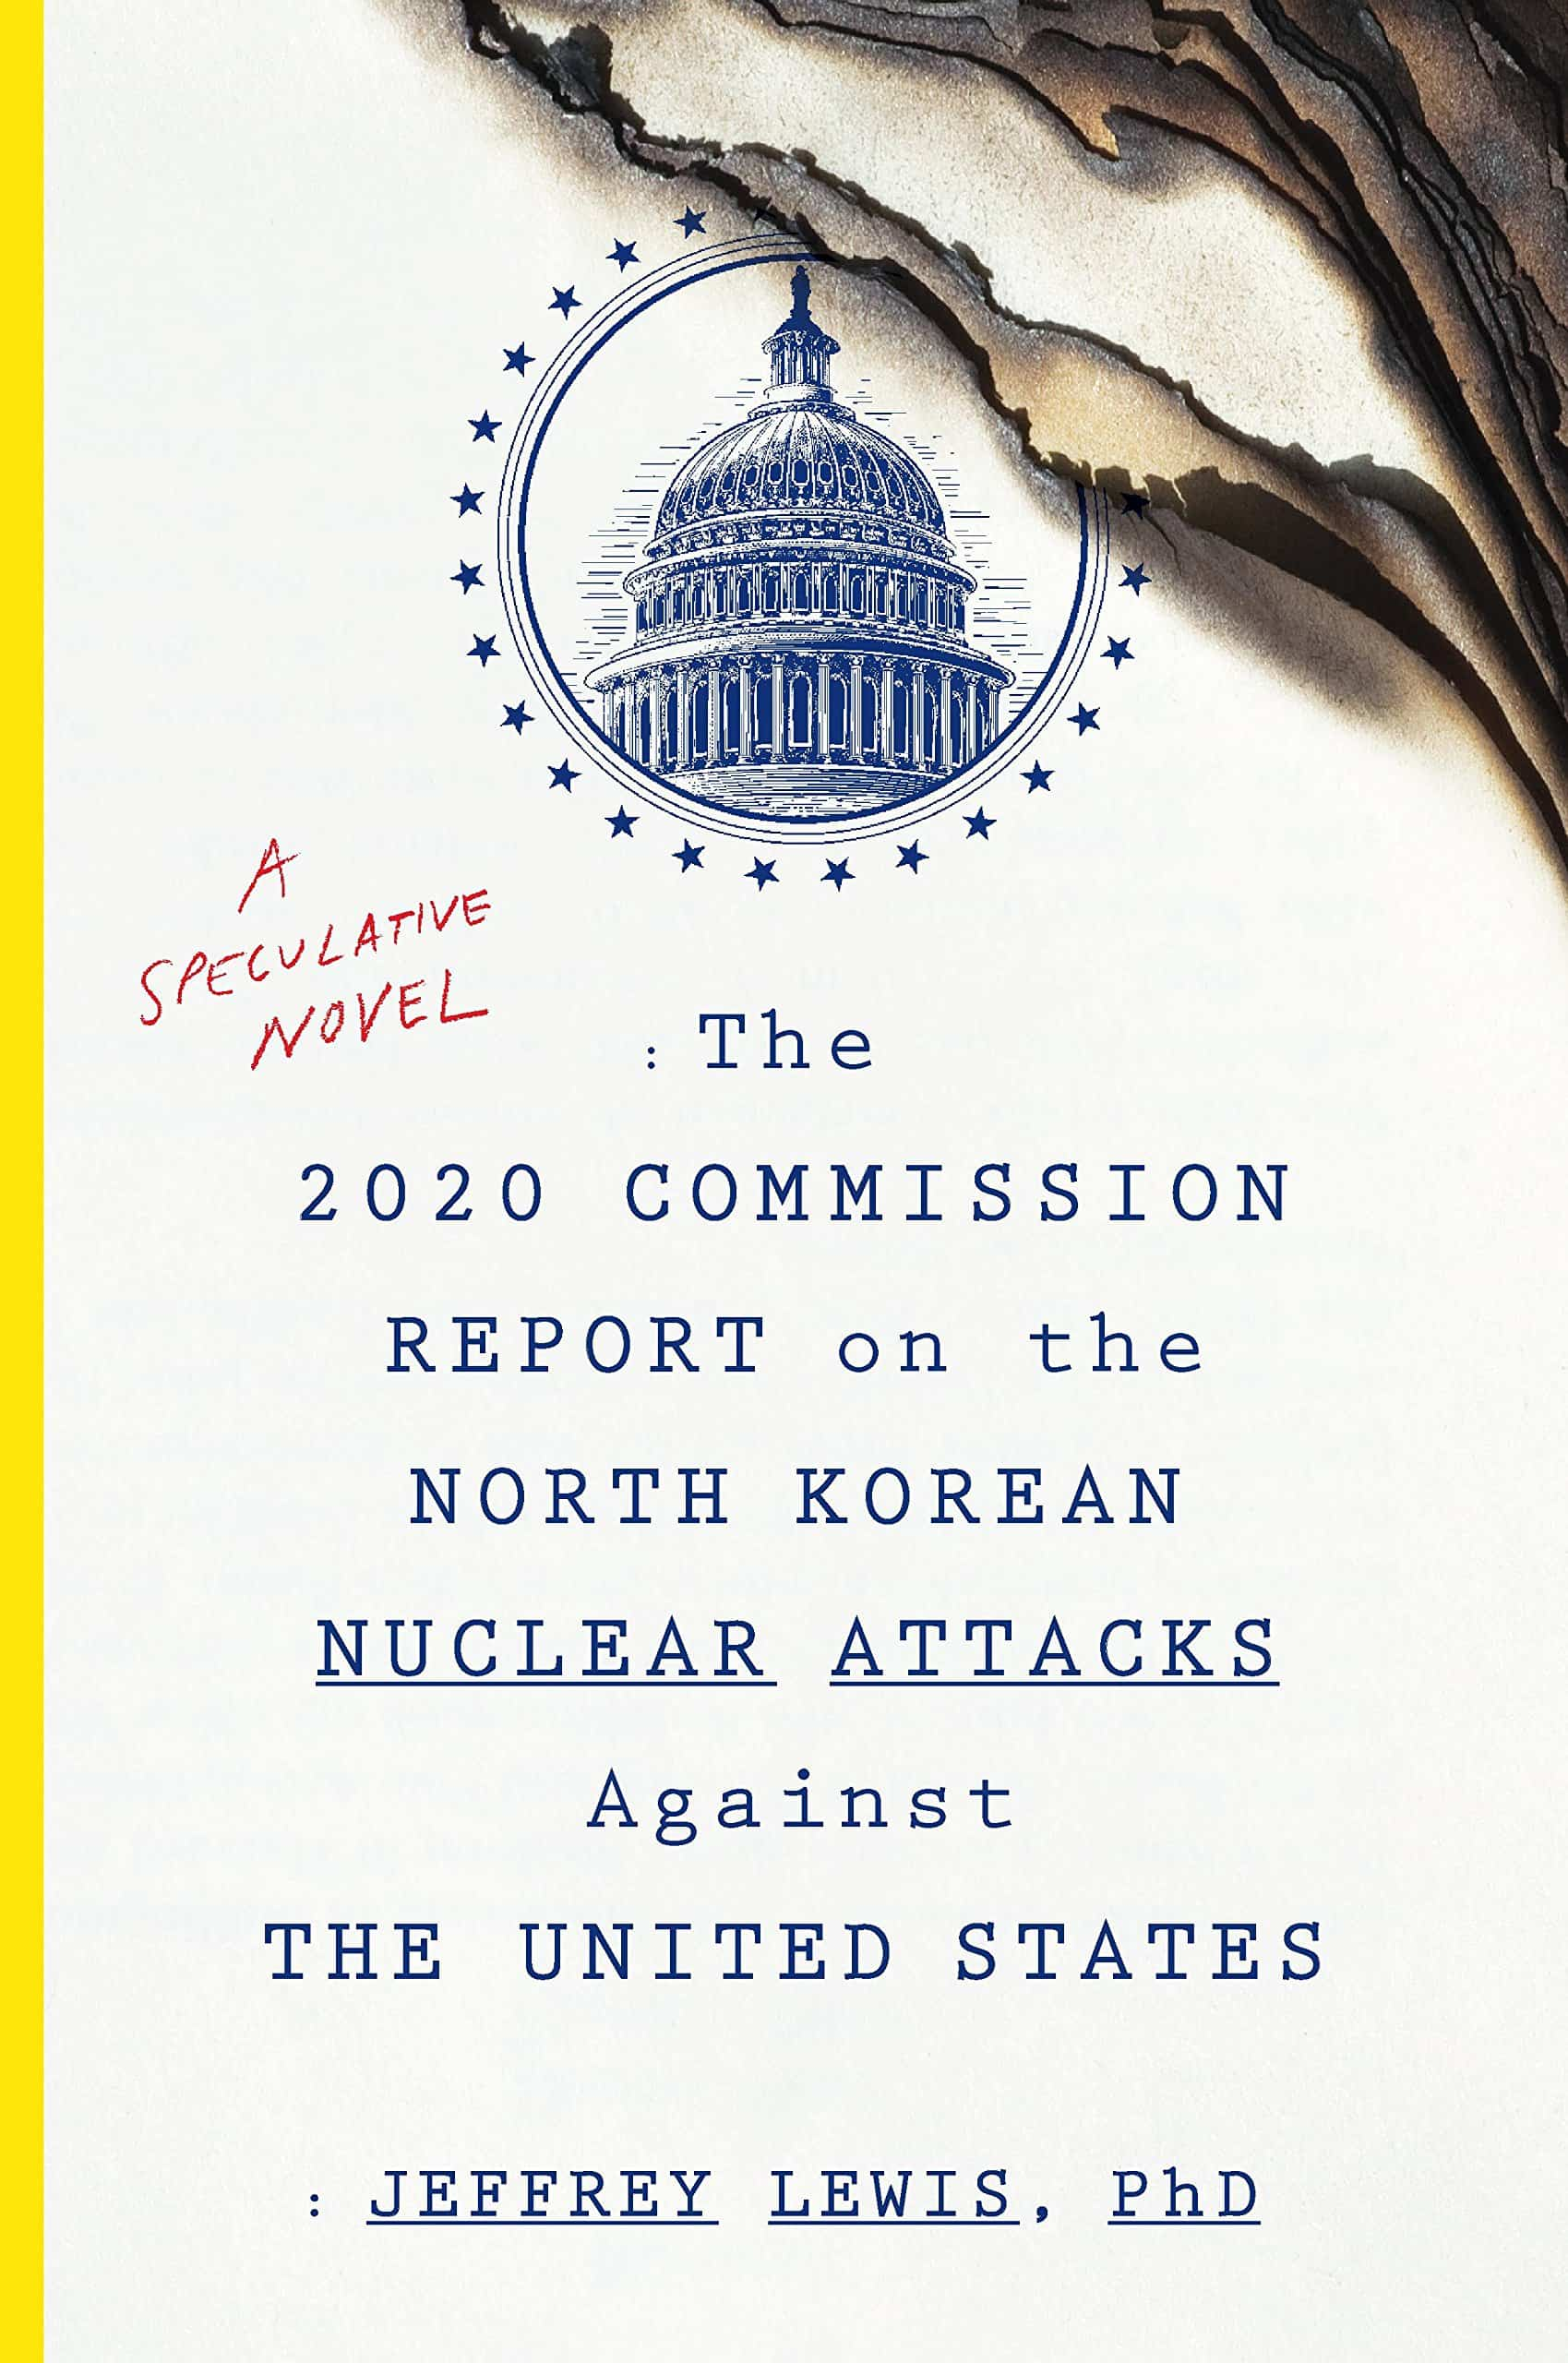 The cover of The 2020 Commission Report on the North Korean Nuclear Attacks Against the United States